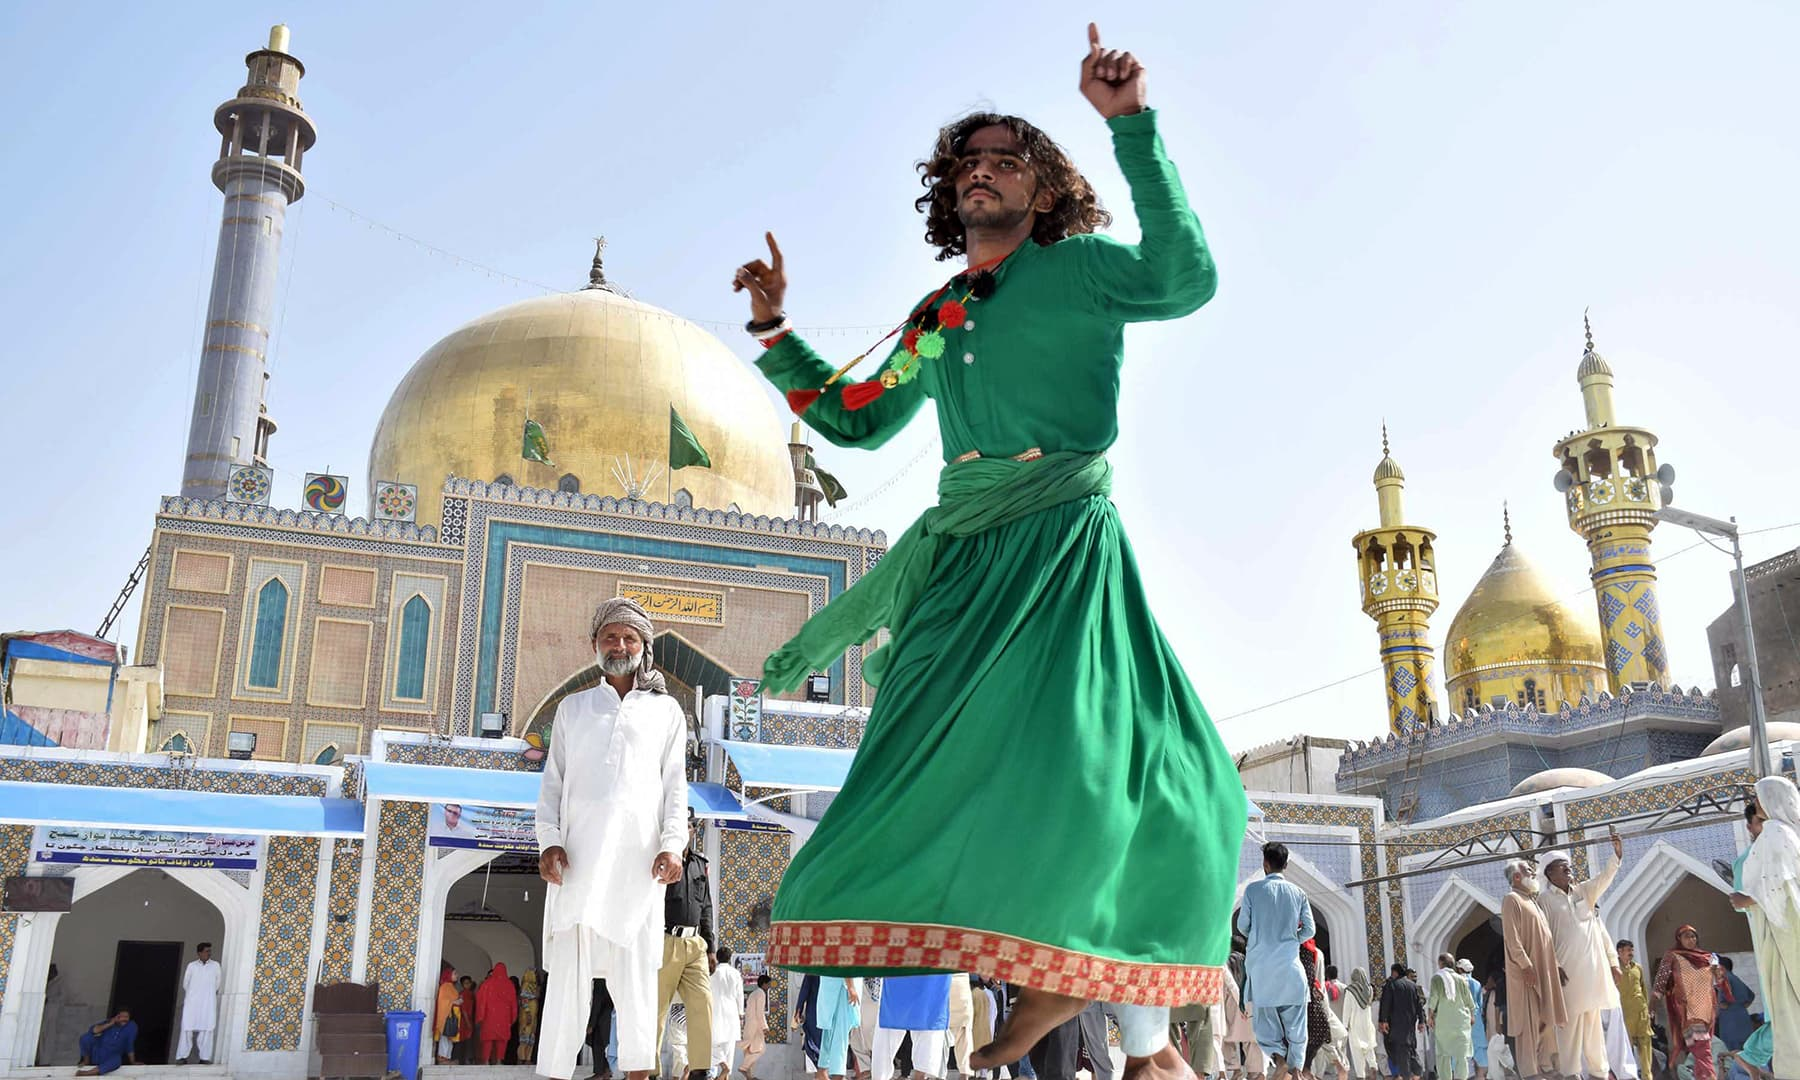 Resplendent in a green frock, a devotee performs a Sufi dance in the shrine's courtyard.